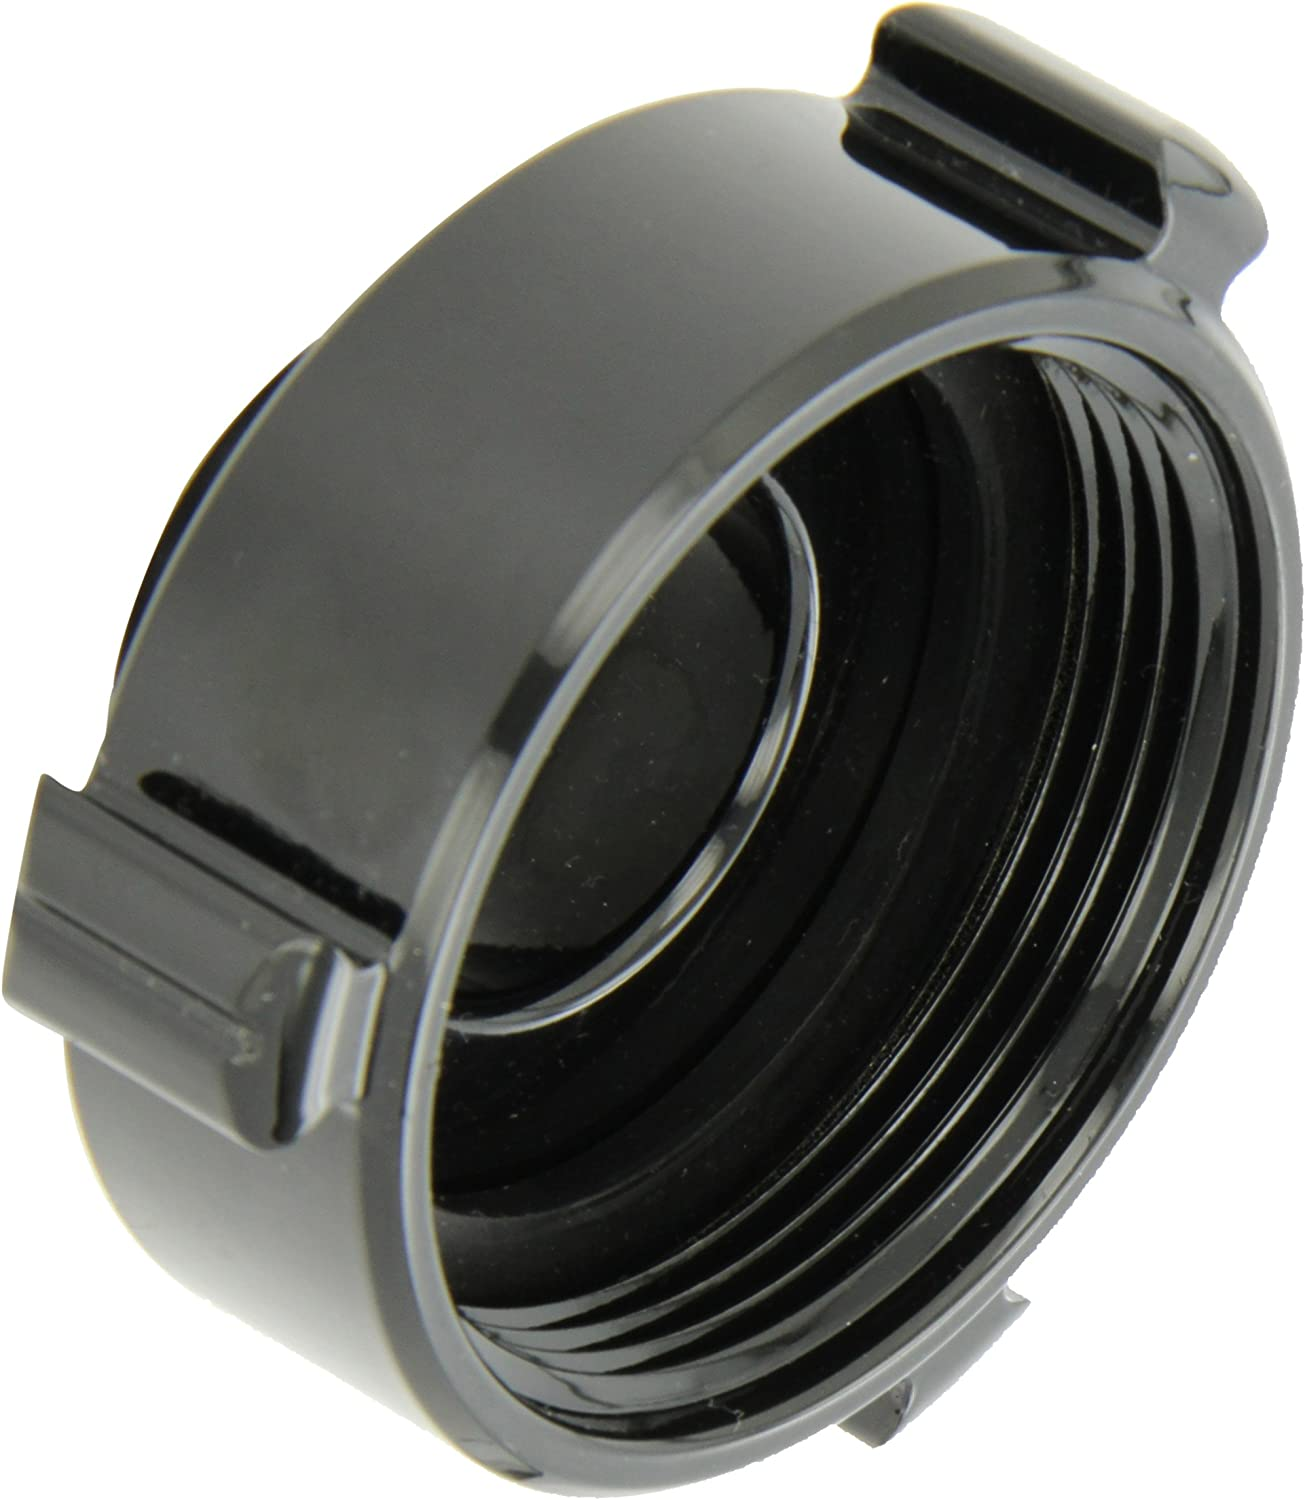 Rocker Lug 2-1//2 NH RIG RL Female x 1-1//2 NH Male Moon 369-2521524 Aluminum Fire Hose Adapter